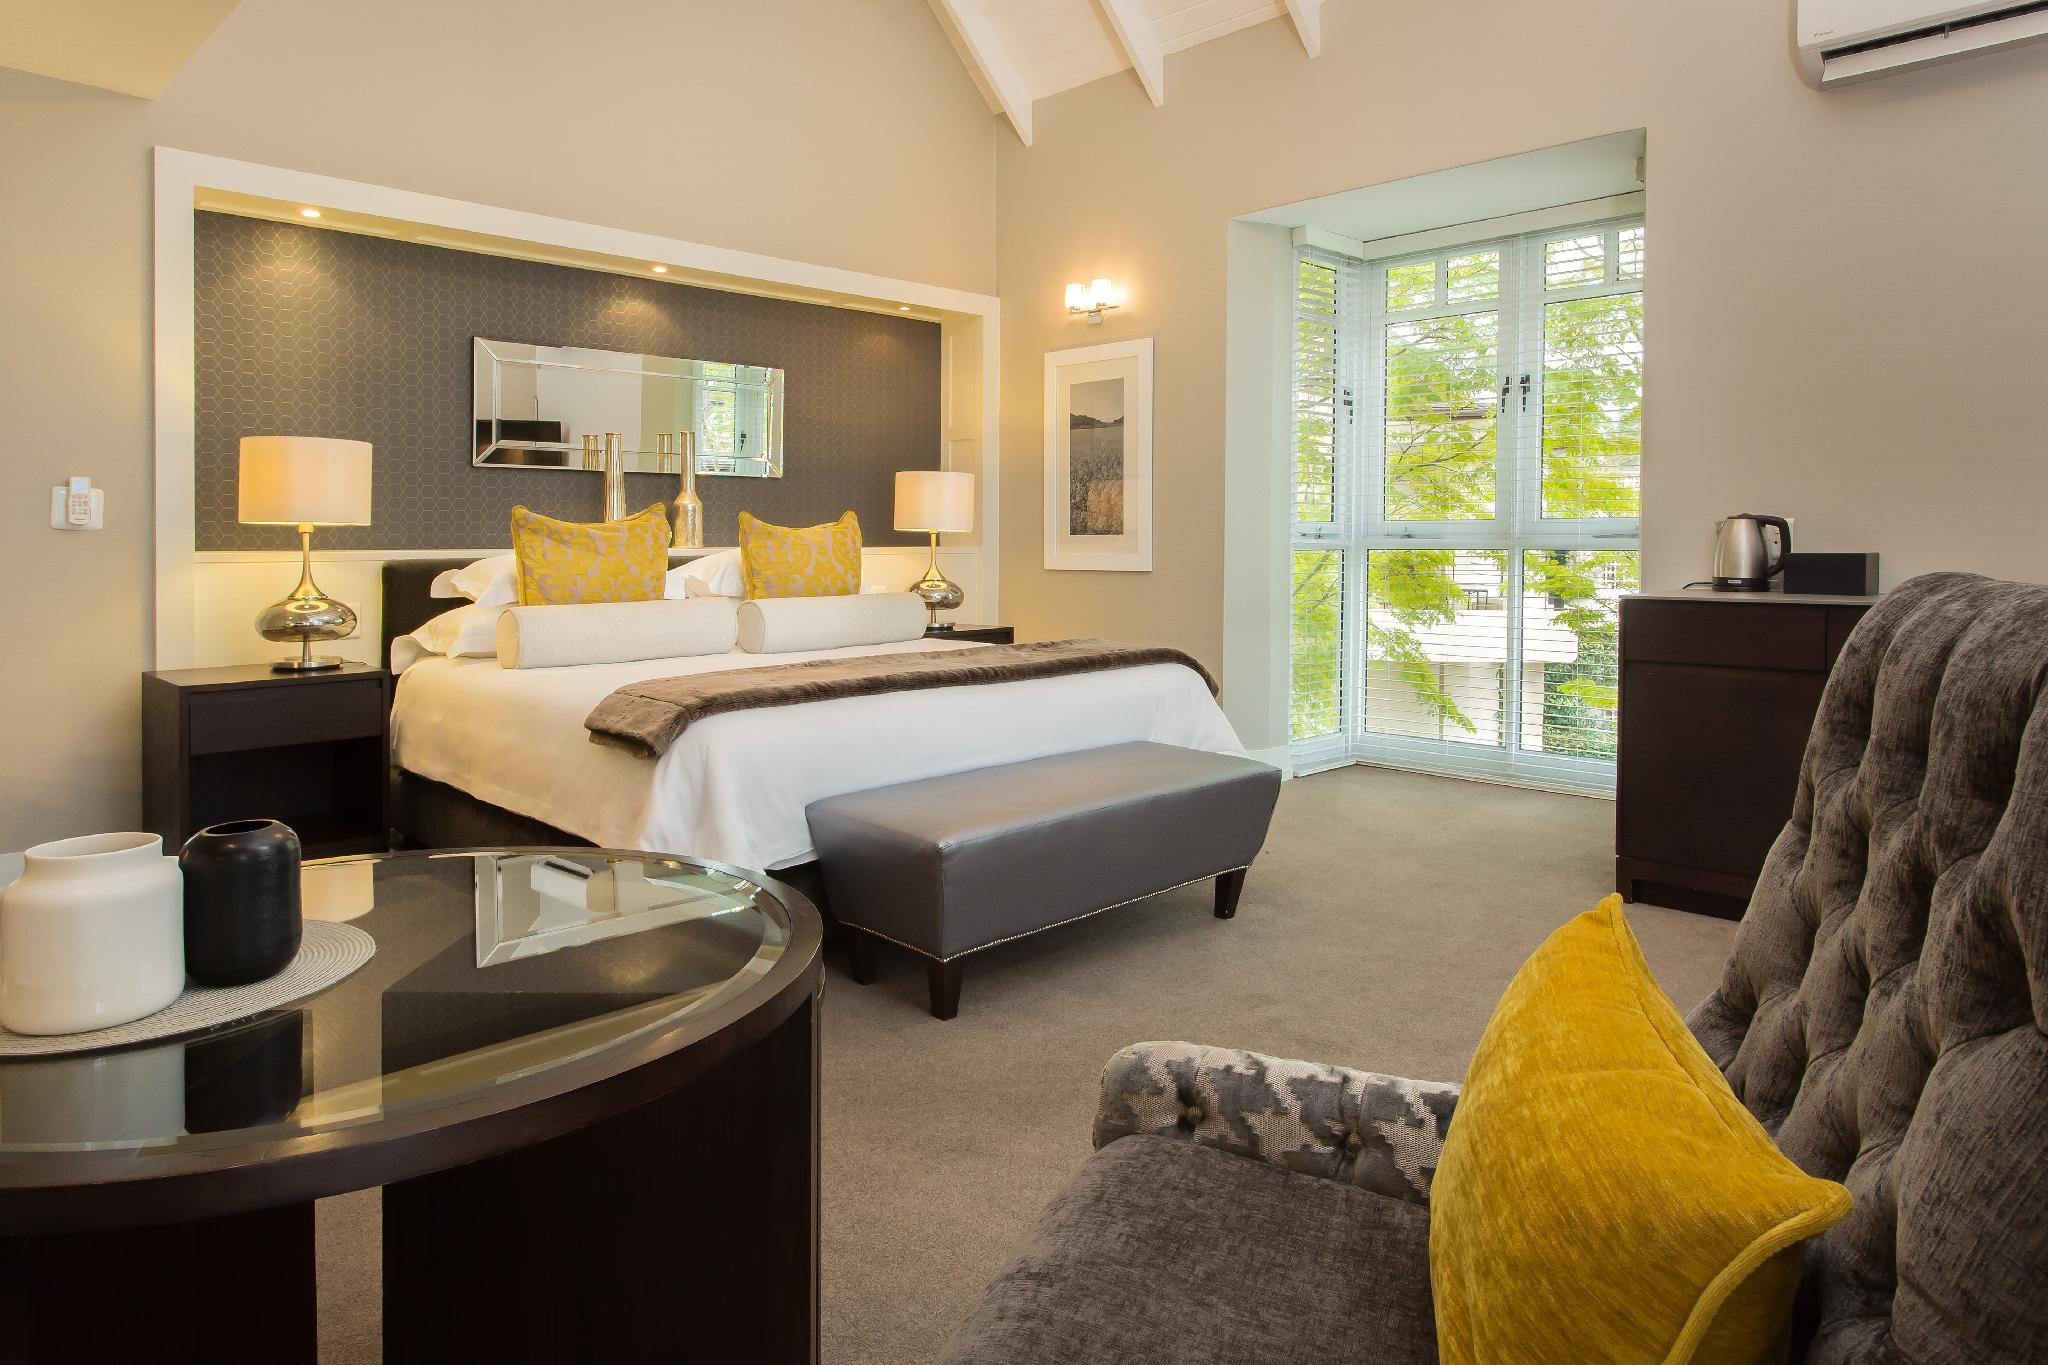 Fancourt Hotel and Country Club, Eden